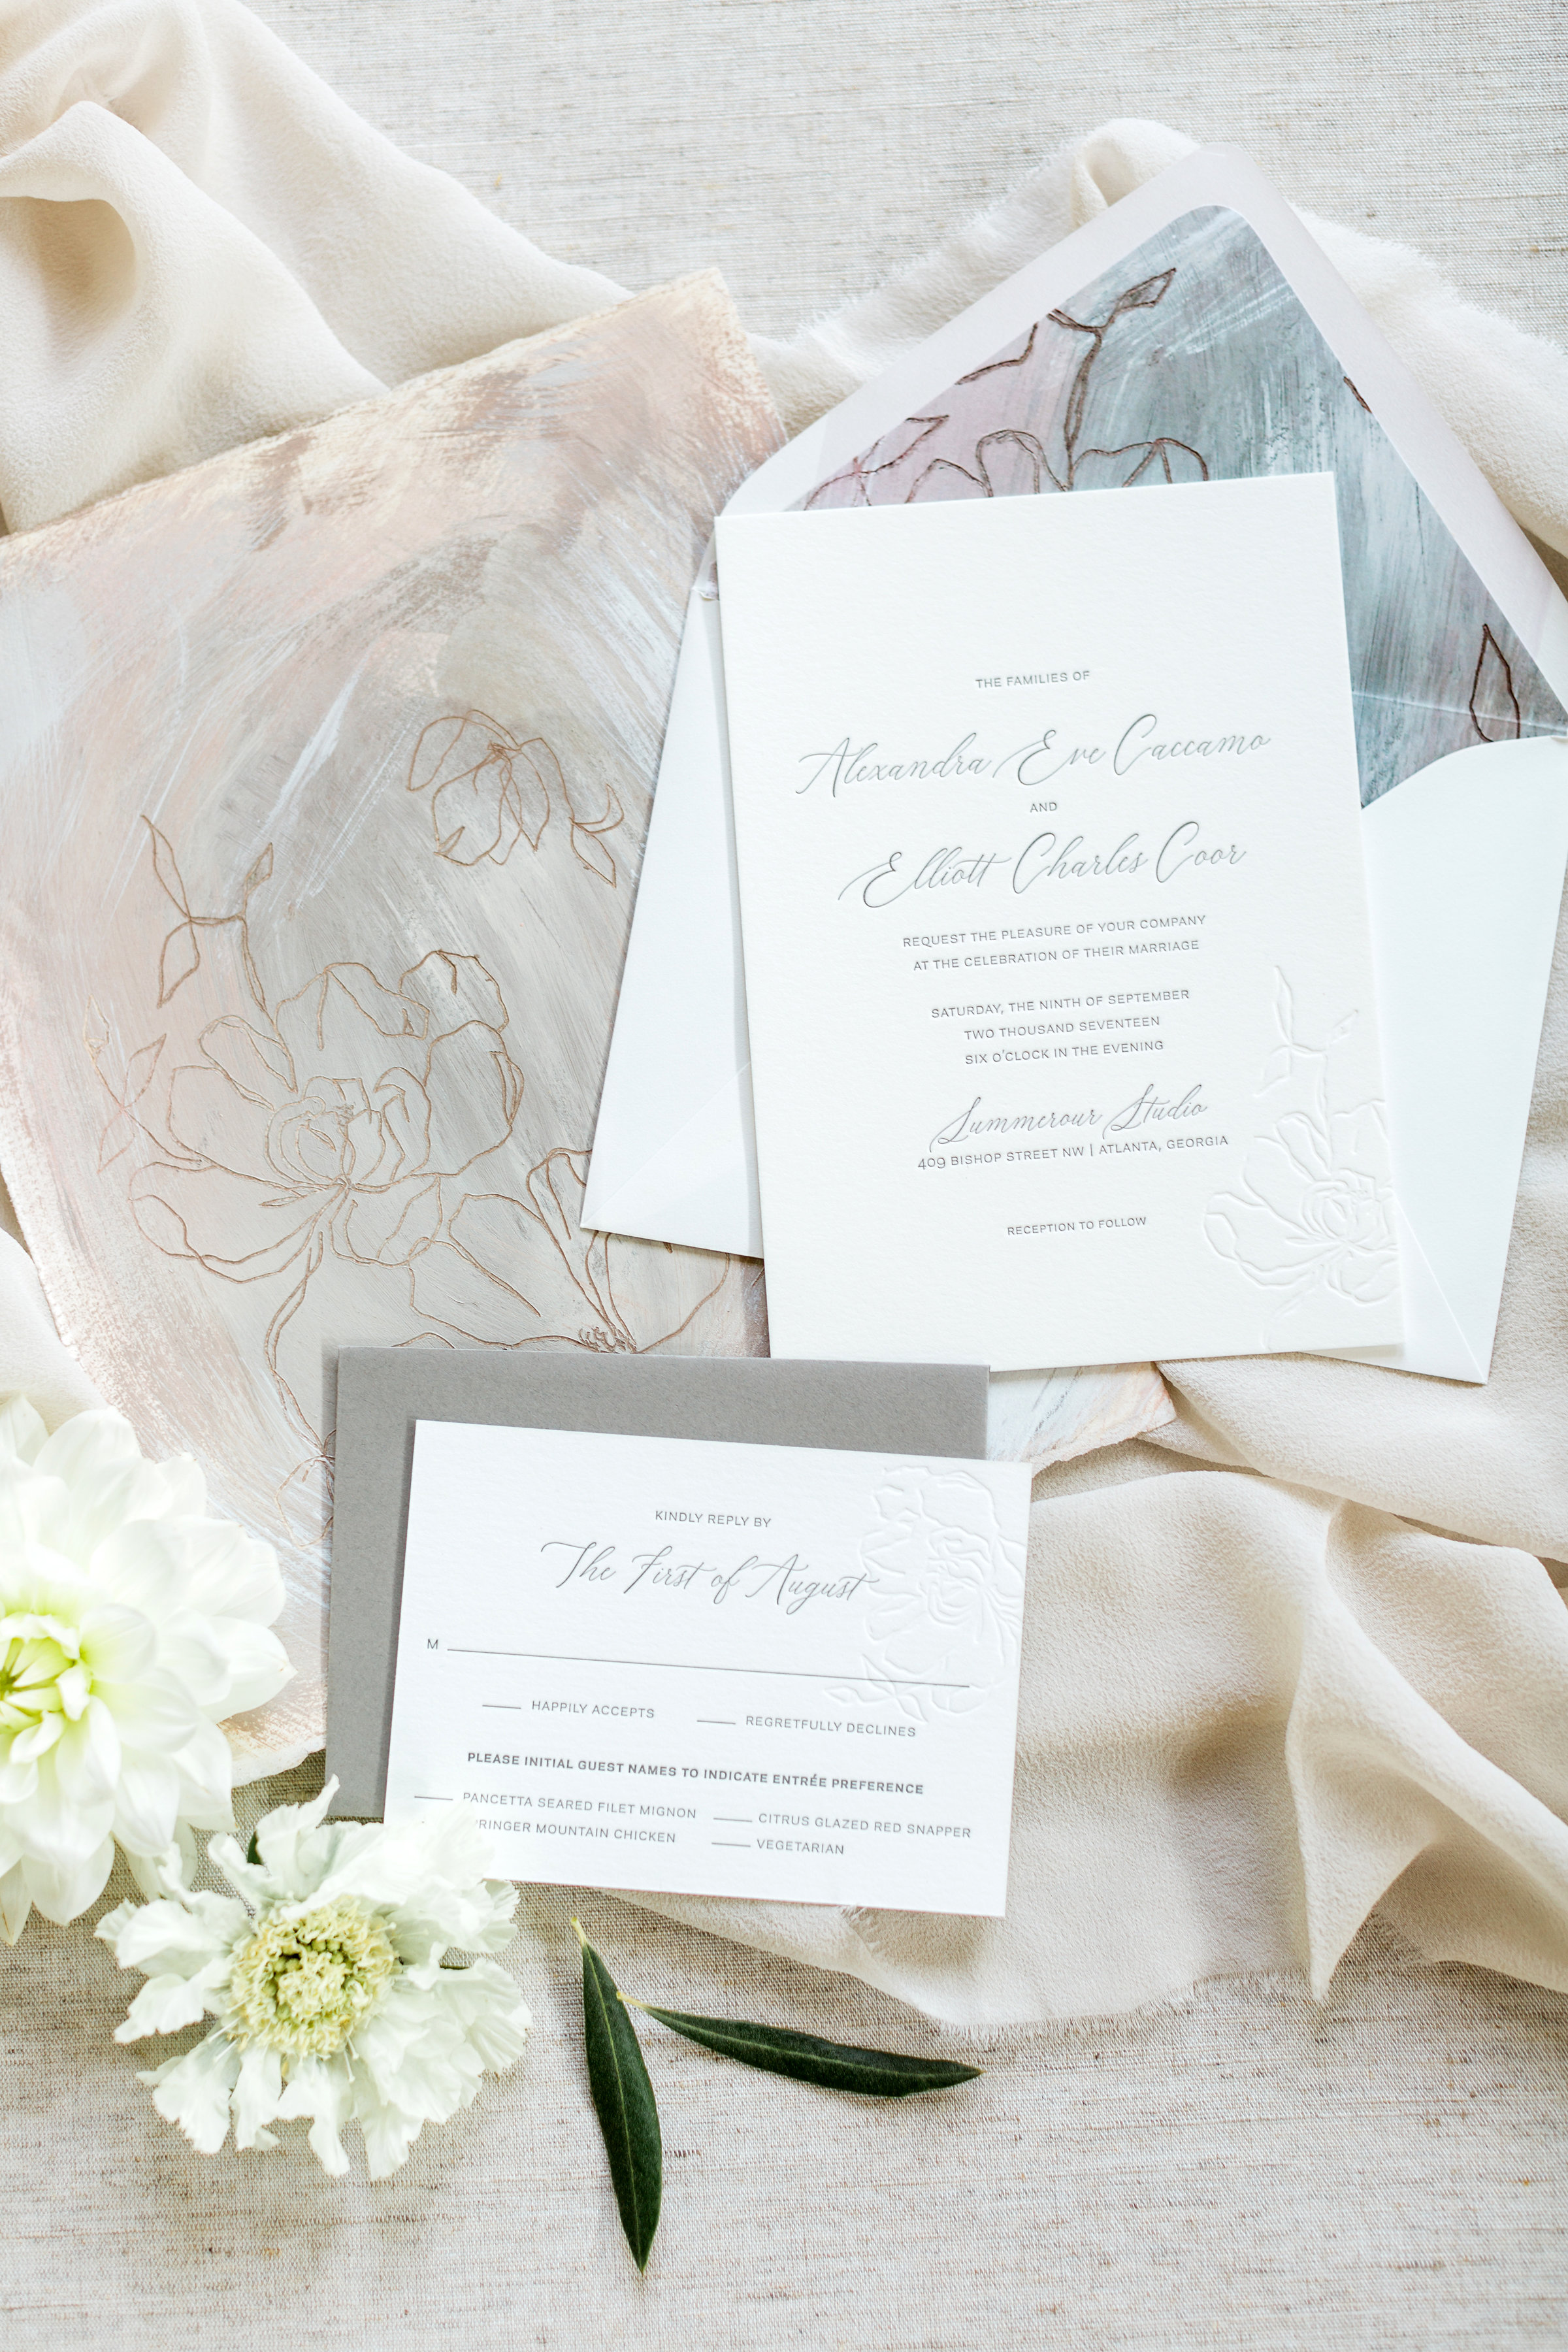 Allie&ElliottWedding_RusticWhite_004.jpg